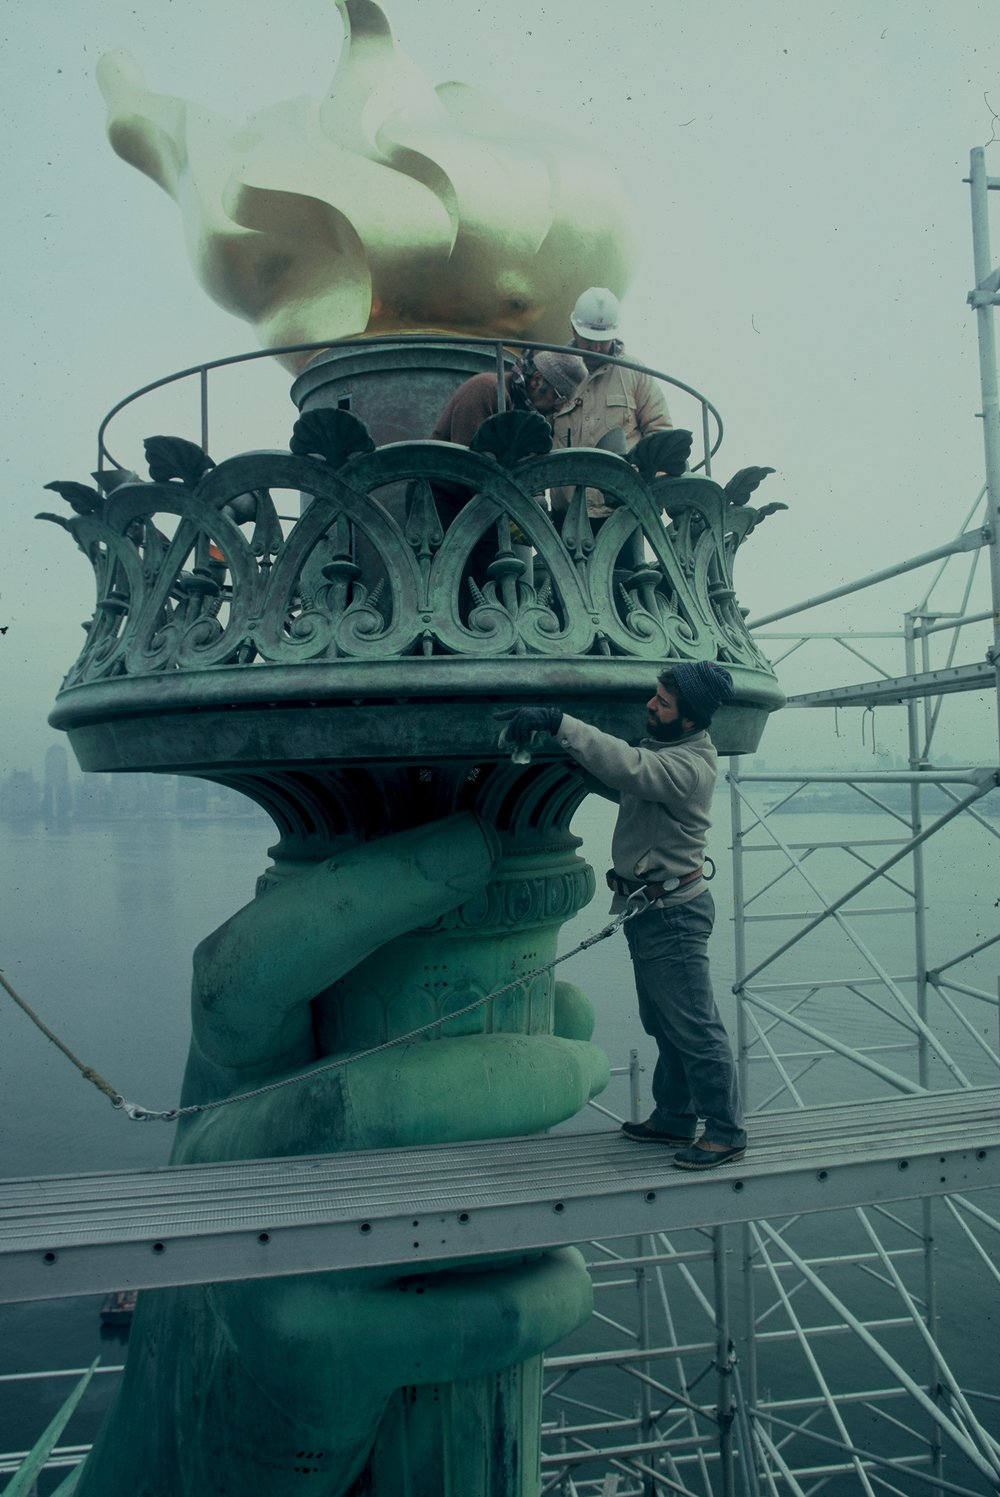 STEVE TATTI AND ALEXANDER TATTI ATOP THE STATUE OF LIBERTY